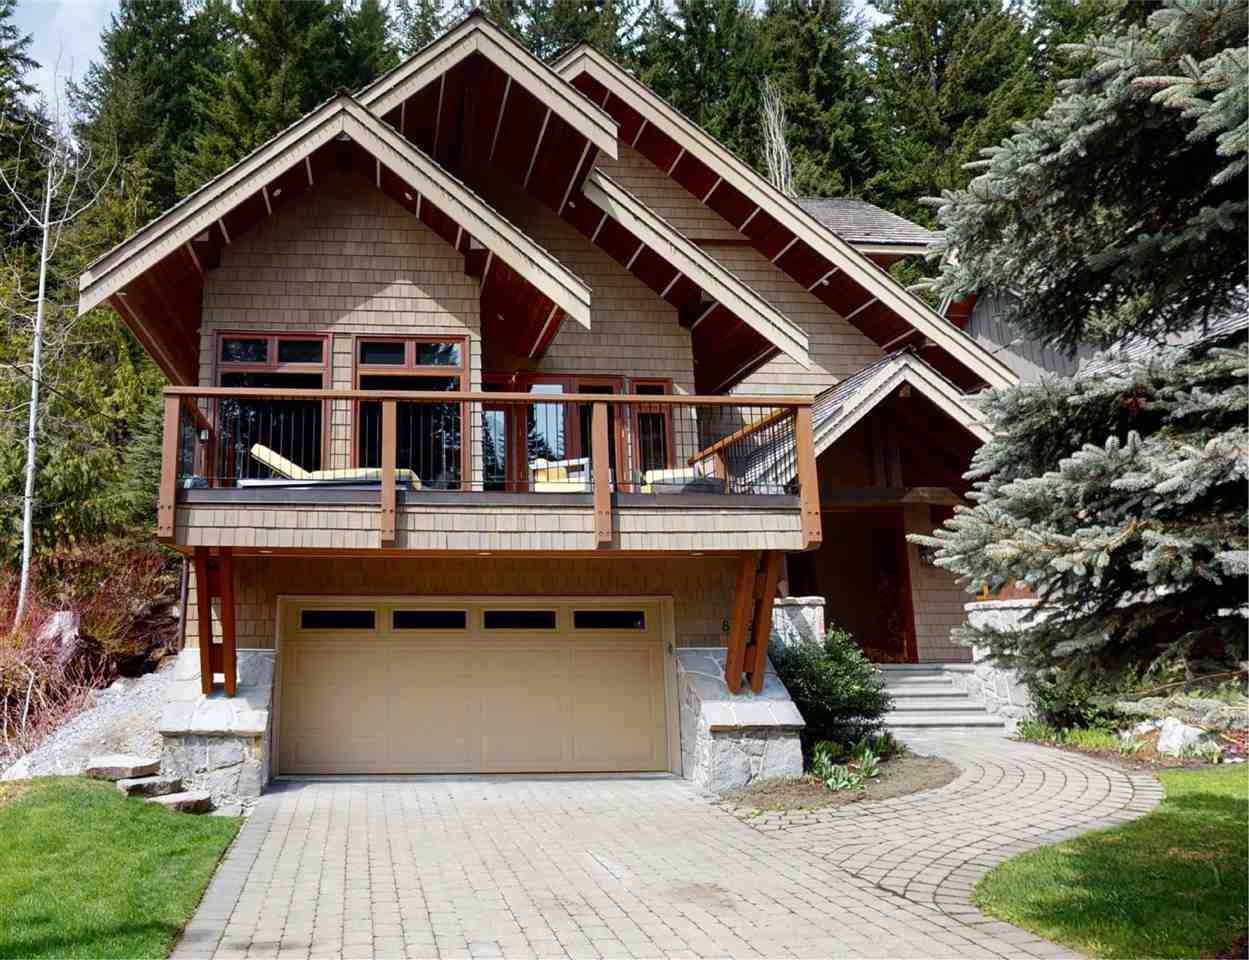 """Main Photo: 8322 VALLEY Drive in Whistler: Alpine Meadows House for sale in """"Alpine Meadows"""" : MLS®# R2453960"""